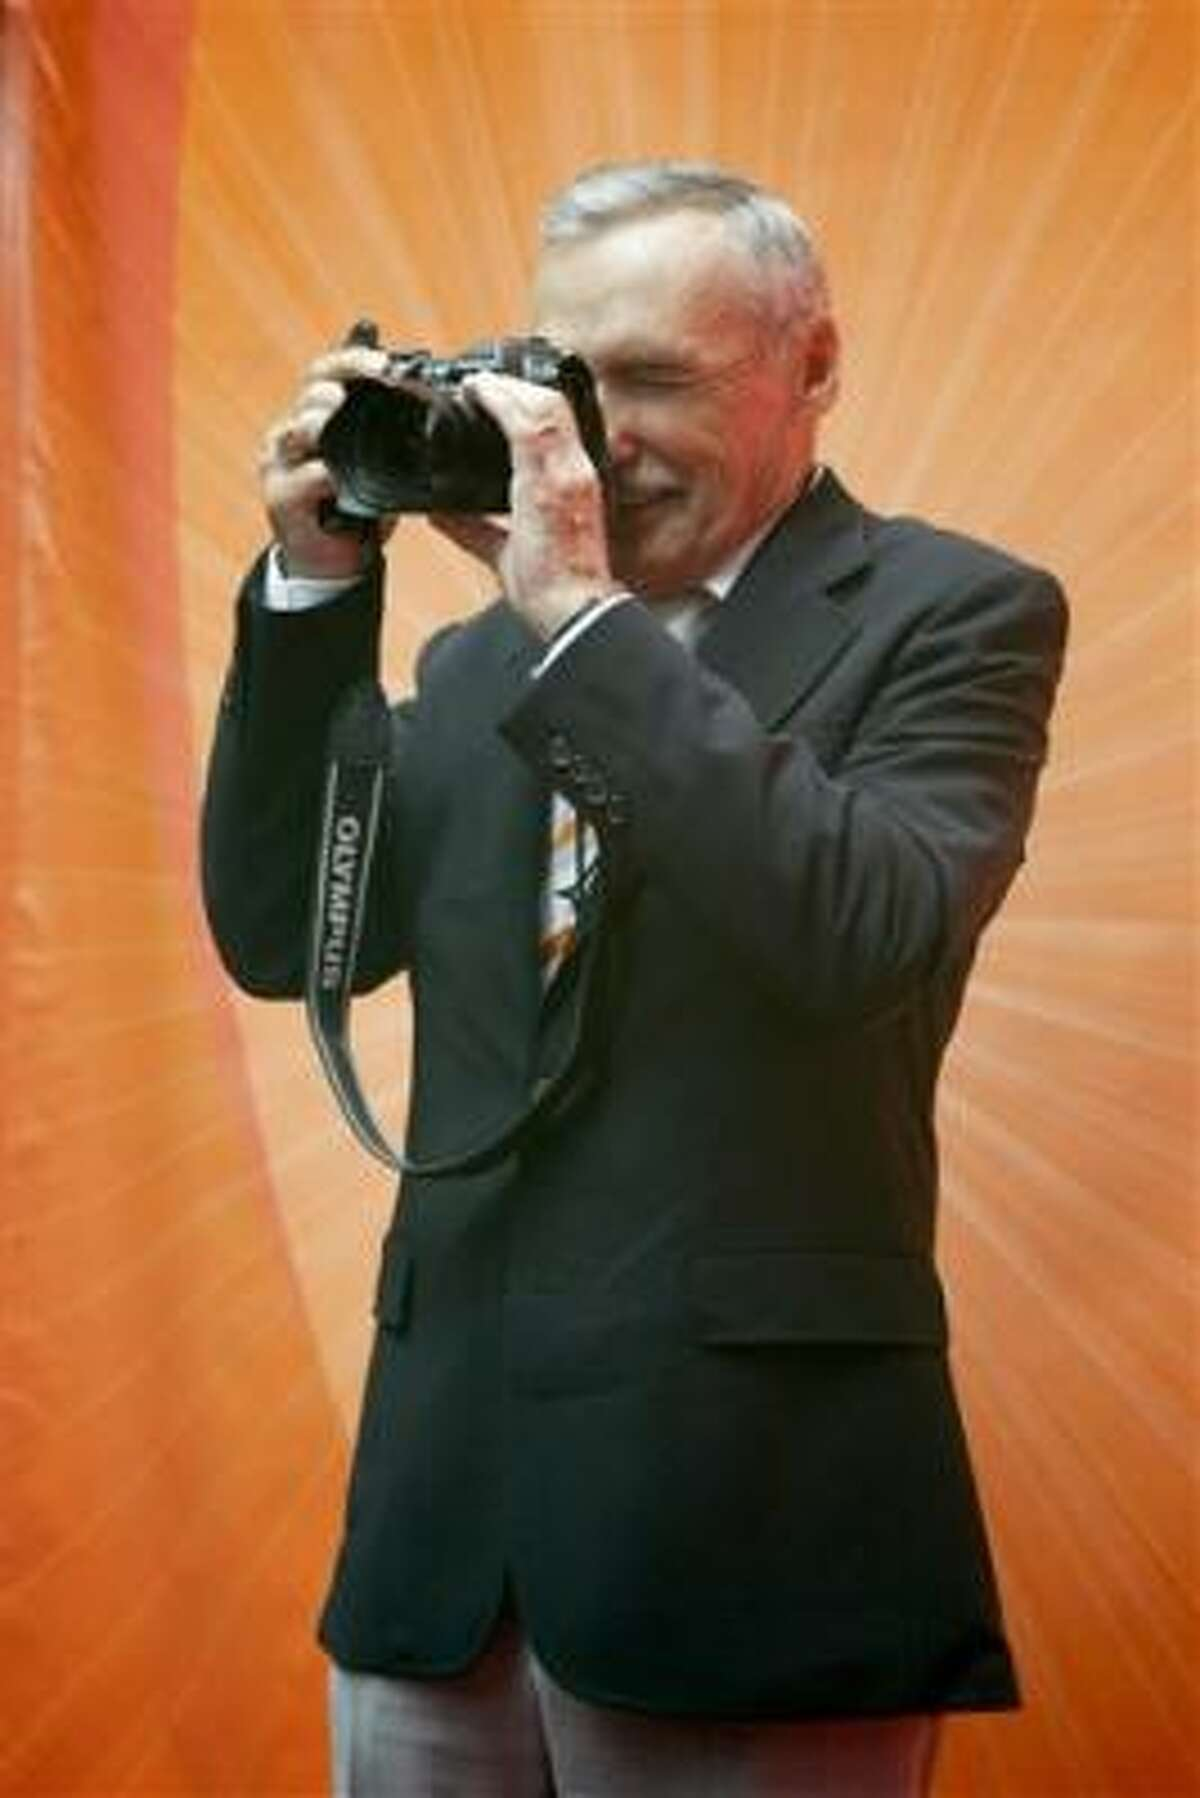 Hopper turns his own camera on the media at Radio City Music Hall in 2005.